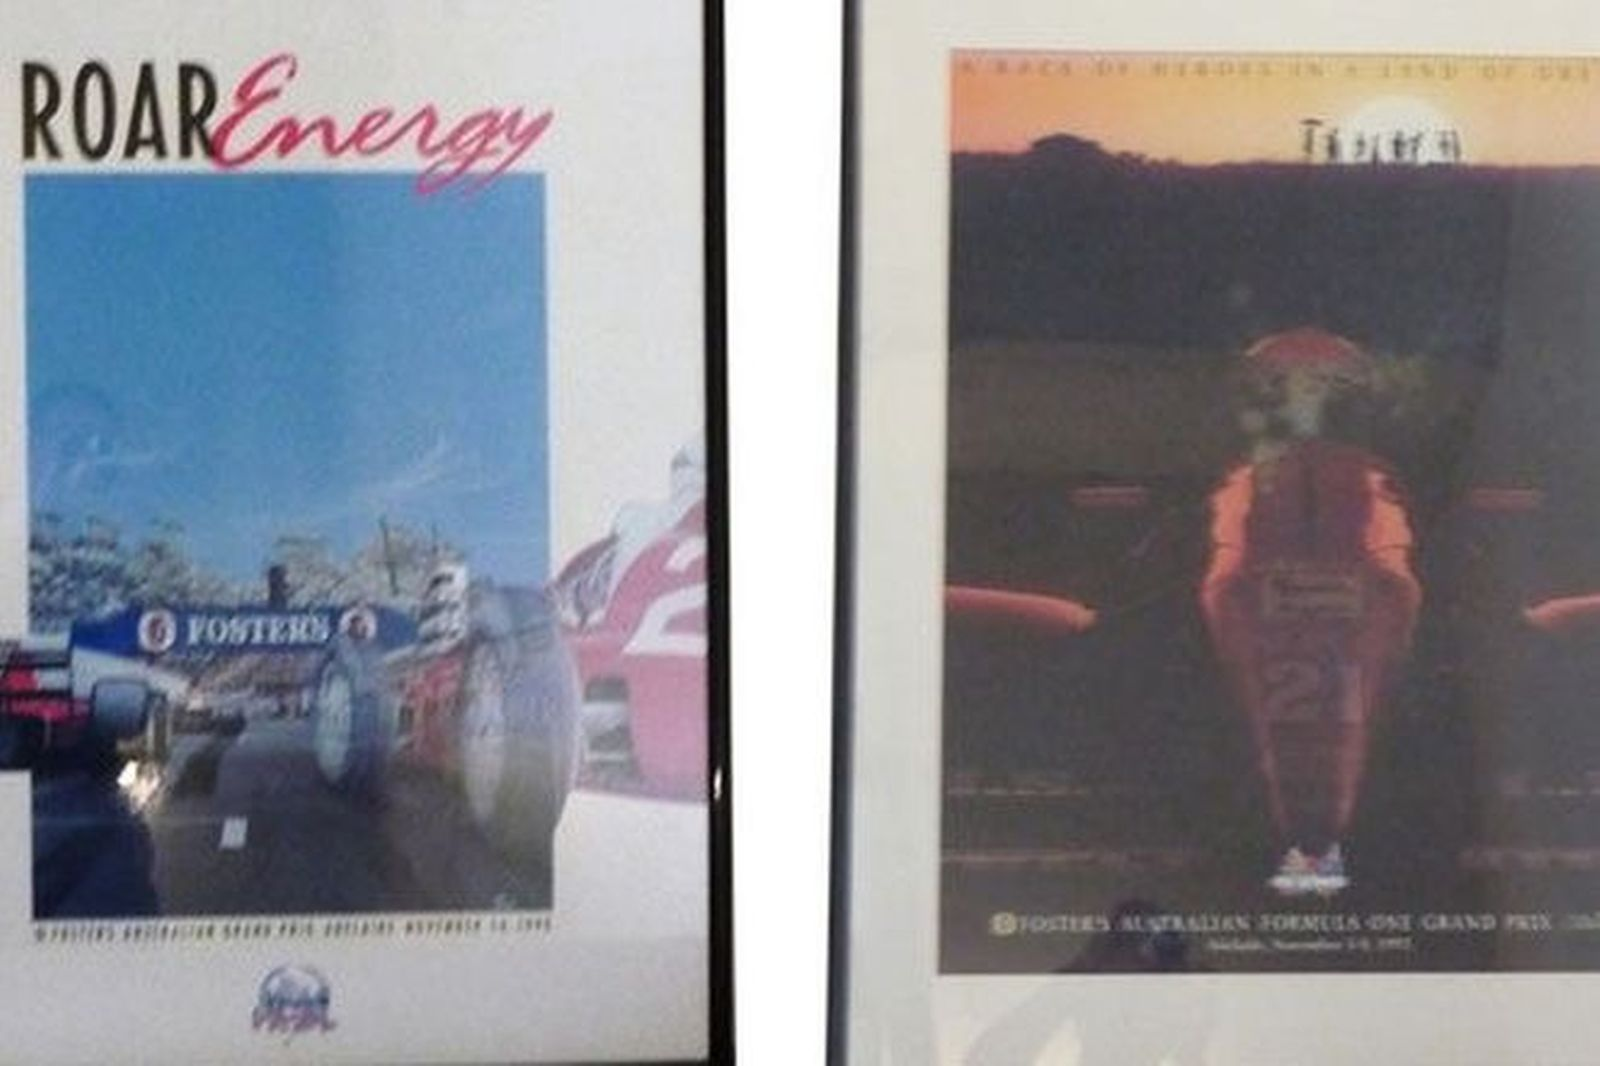 Framed Posters x 10 - Adelaide GP 1985, 1986, 1988-1995 (various sizes approx 110 x 80cm)